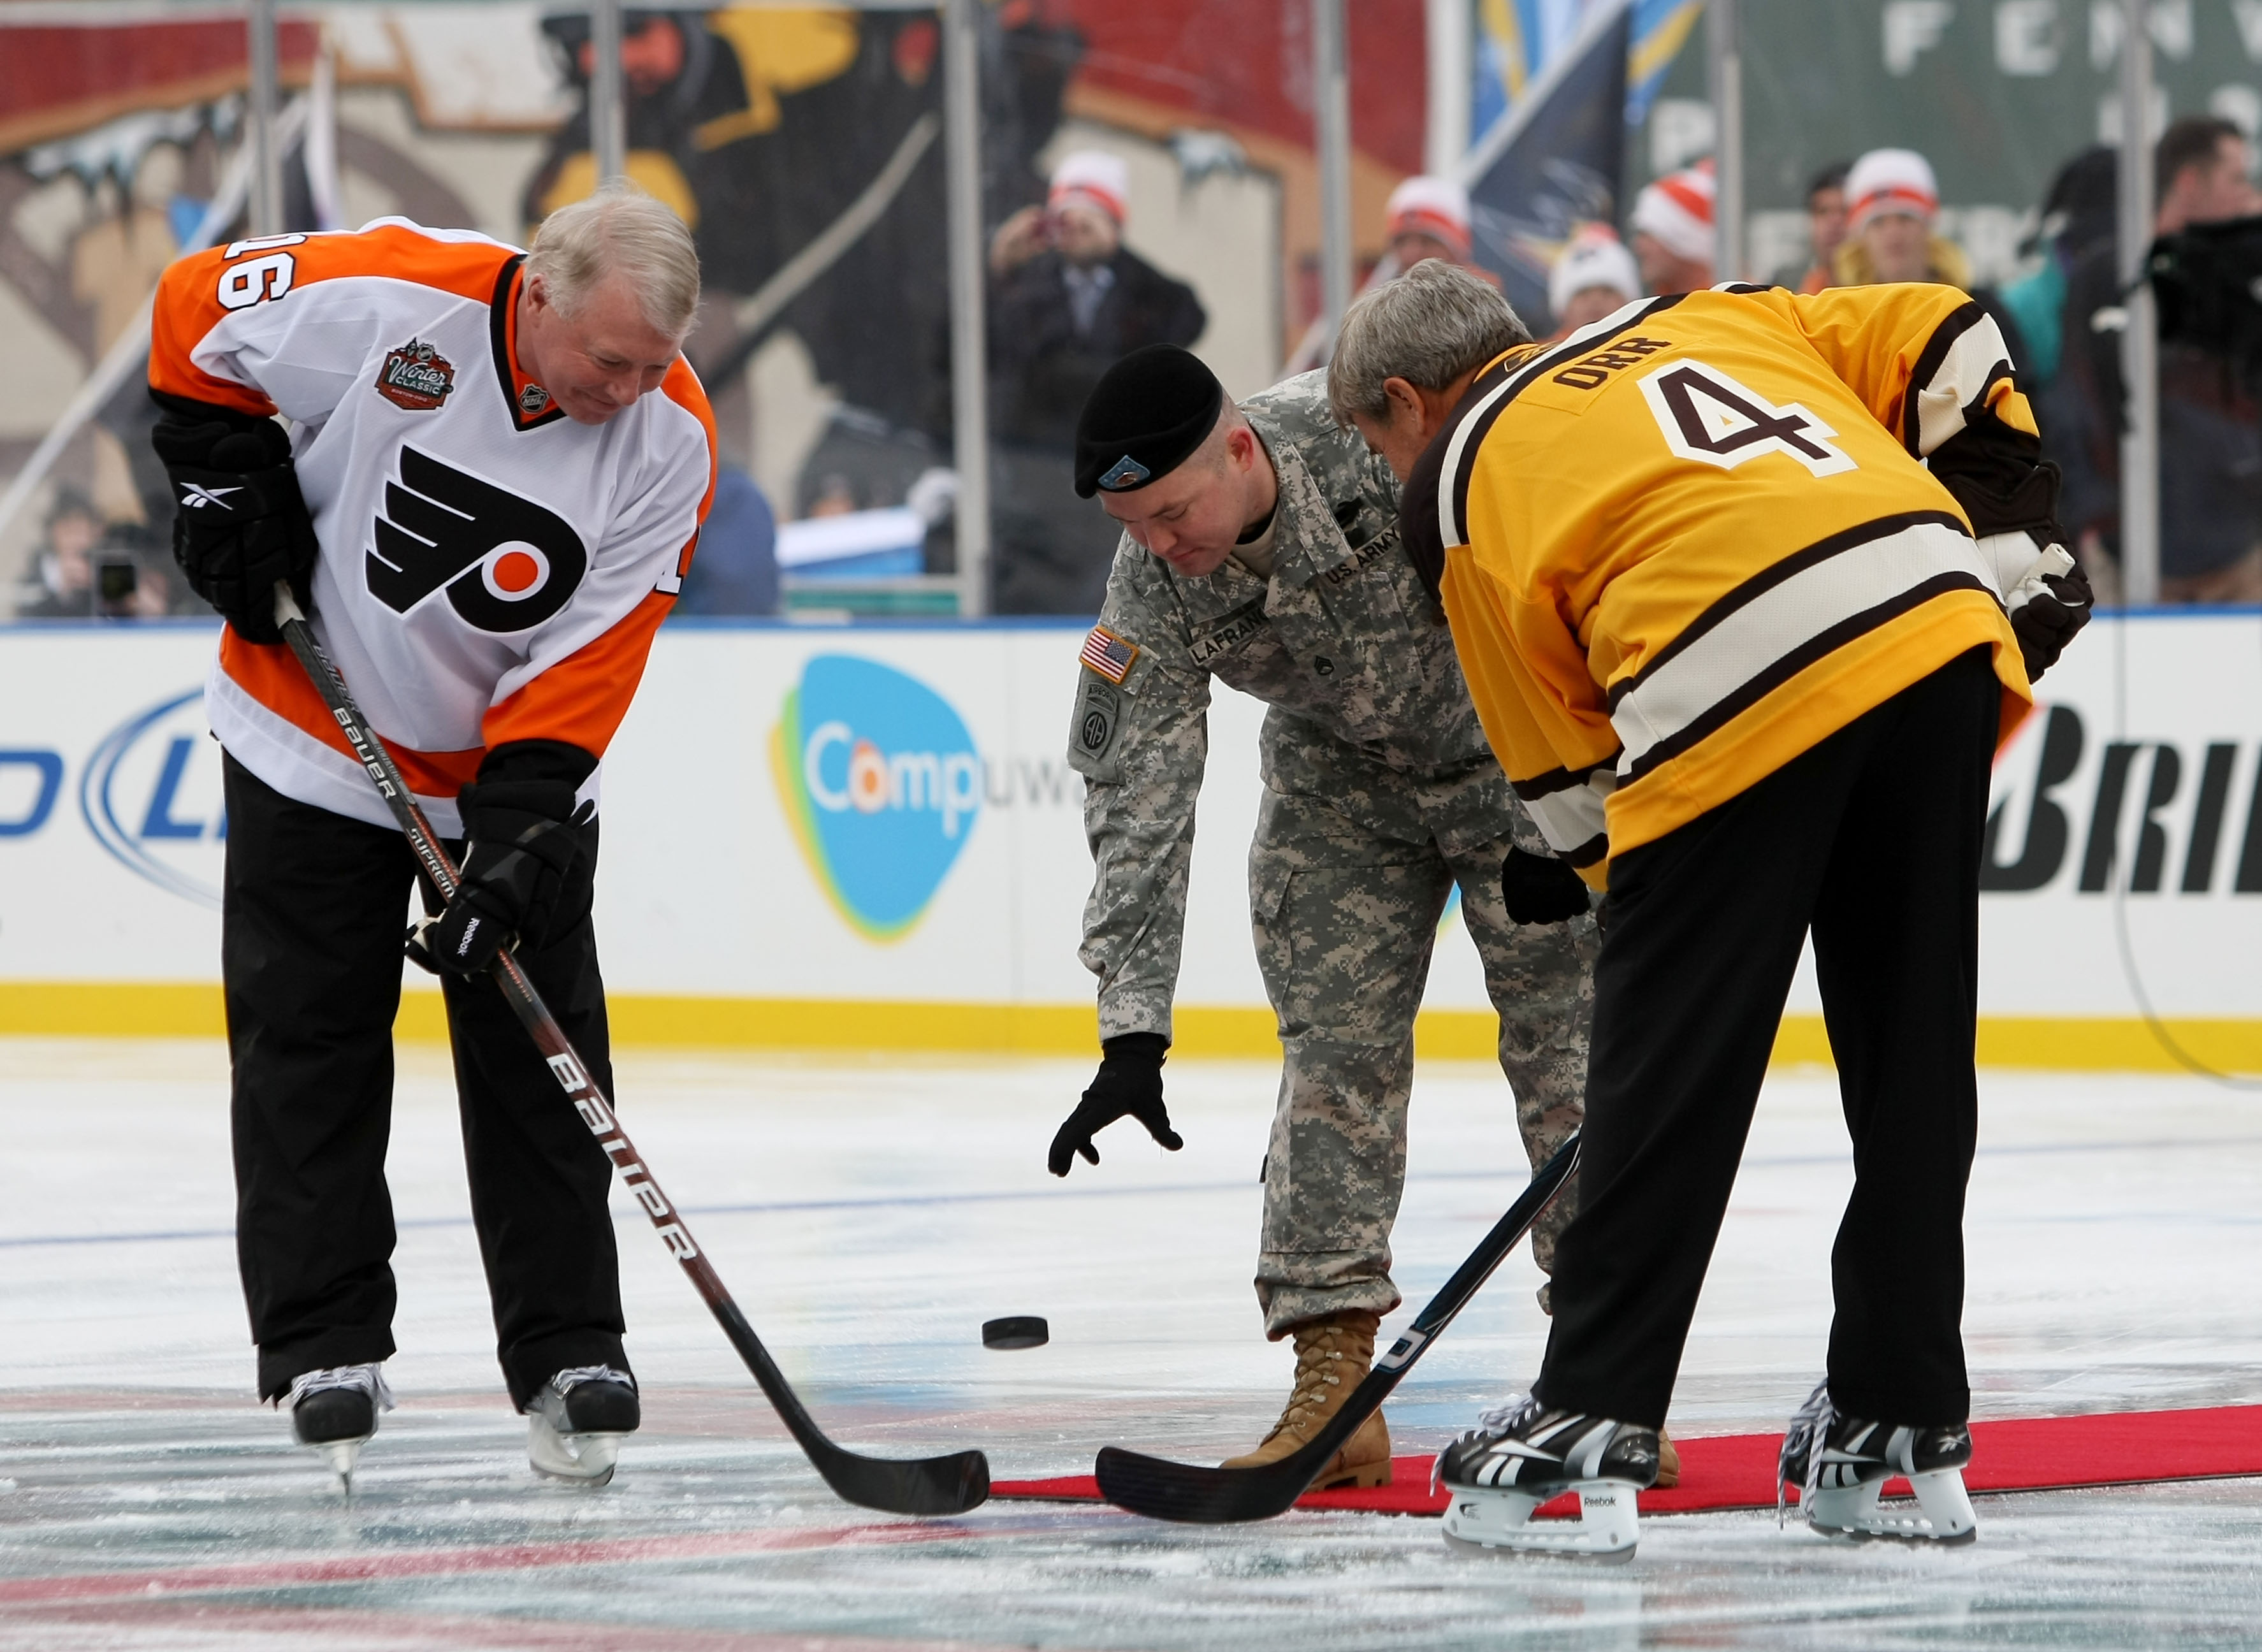 BOSTON - JANUARY 01:  Staff Sergeant Ryan R. LaFrance (C) drops the ceremonial first puck for Bobby Clarke #16 (L) honorary captain of the Philadelphia Flyers and Bobby Orr #4 (R) honorary captain of the Boston Bruins during the 2010 Bridgestone Winter Cl